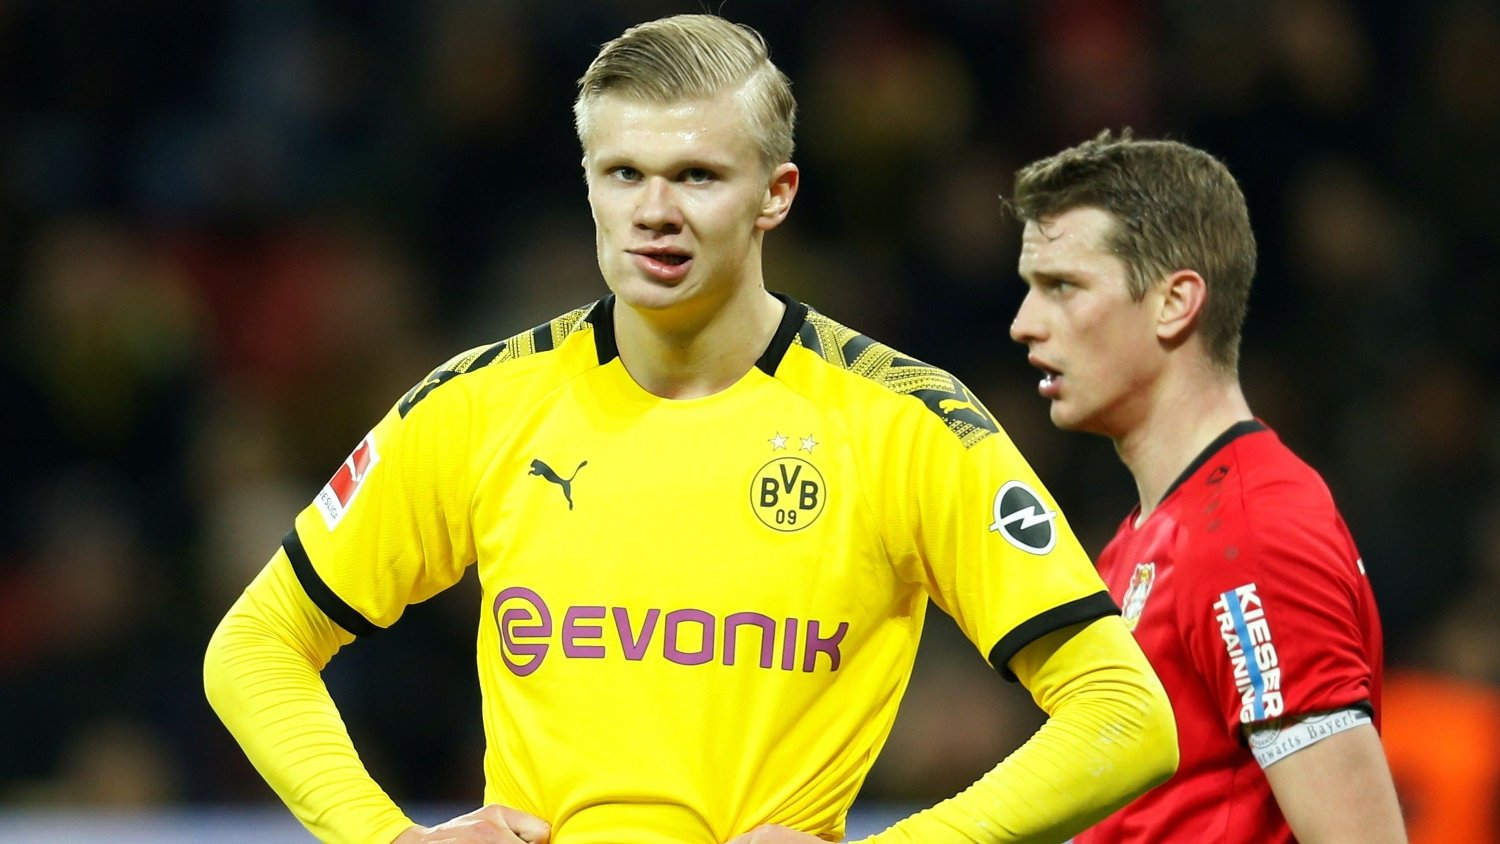 Soccer Football - Bundesliga - Bayer Leverkusen v Borussia Dortmund - BayArena, Leverkusen, Germany - February 8, 2020 Borussia Dortmund's Erling Braut Haaland looks dejected REUTERS/Leon Kuegeler DFL regulations prohibit any use of photographs as image sequences and/or quasi-video